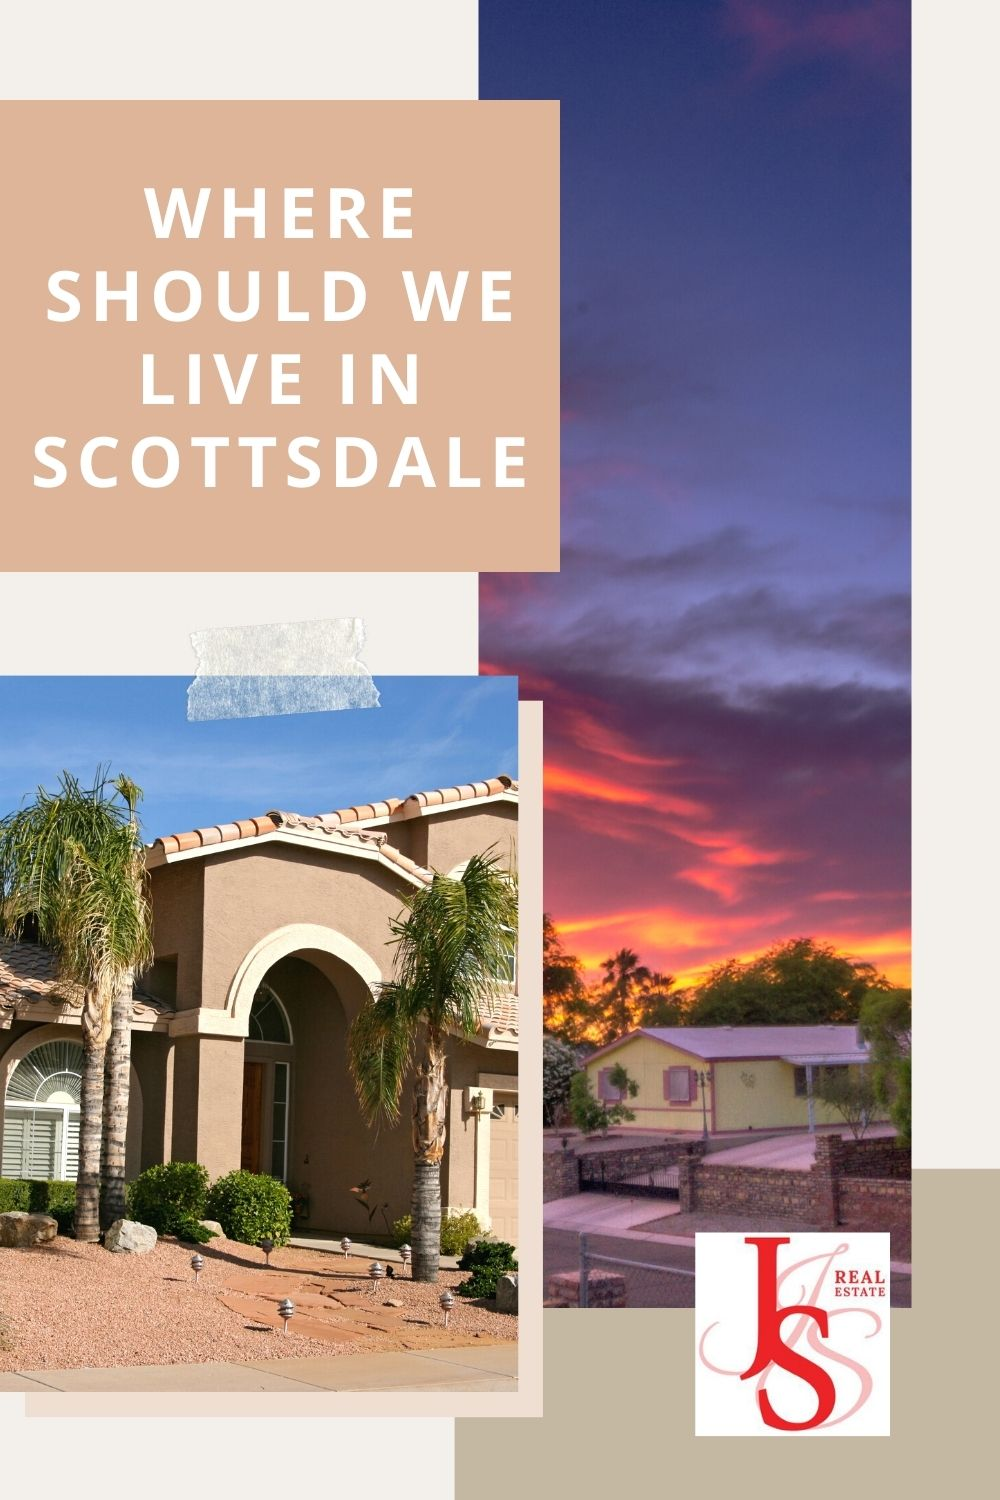 Where Should We Live In Scottsdale